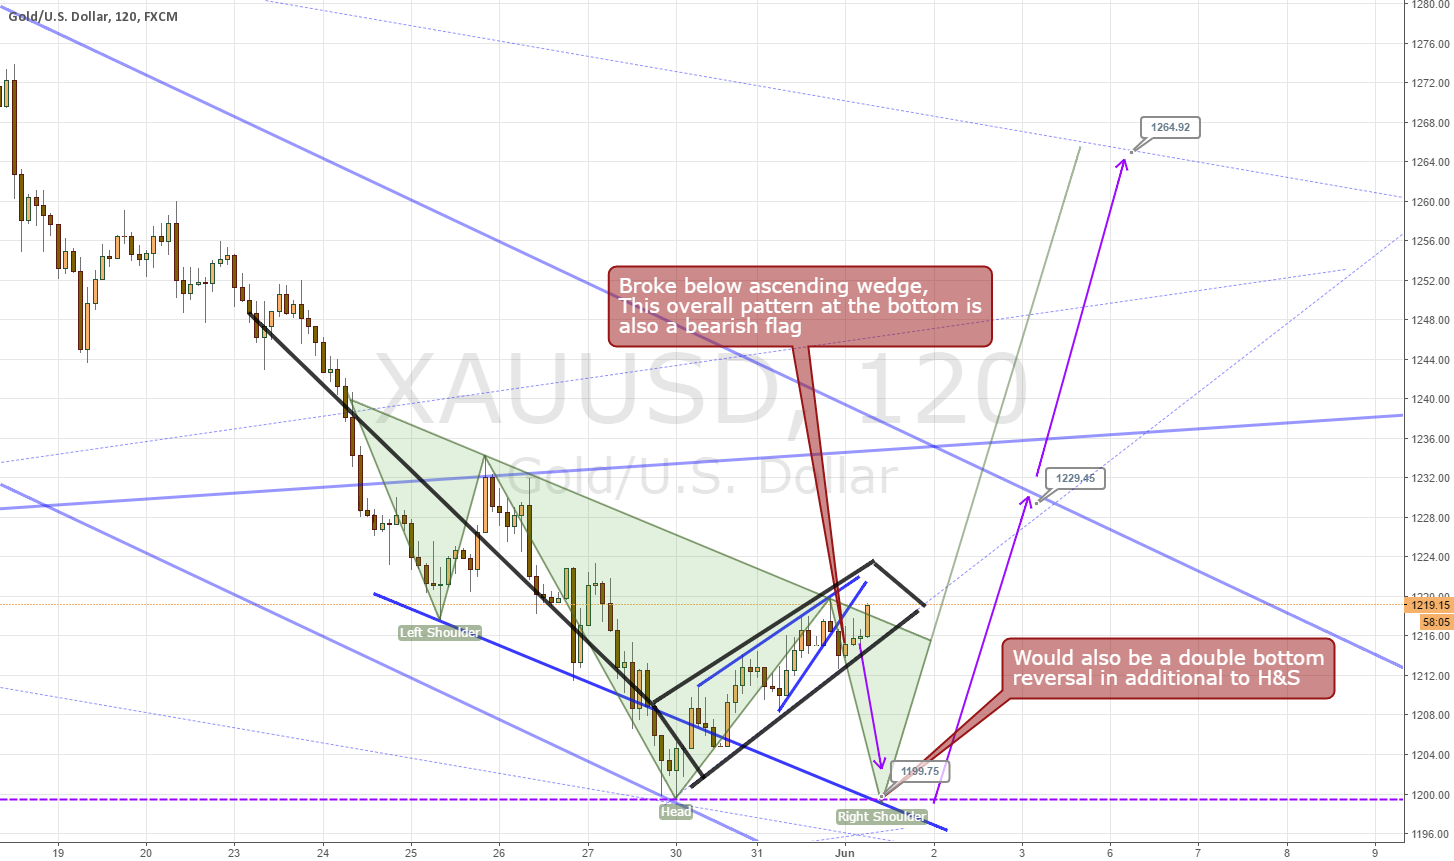 Potential H&S Reversal in Gold after Ascending Wedge Breakdown